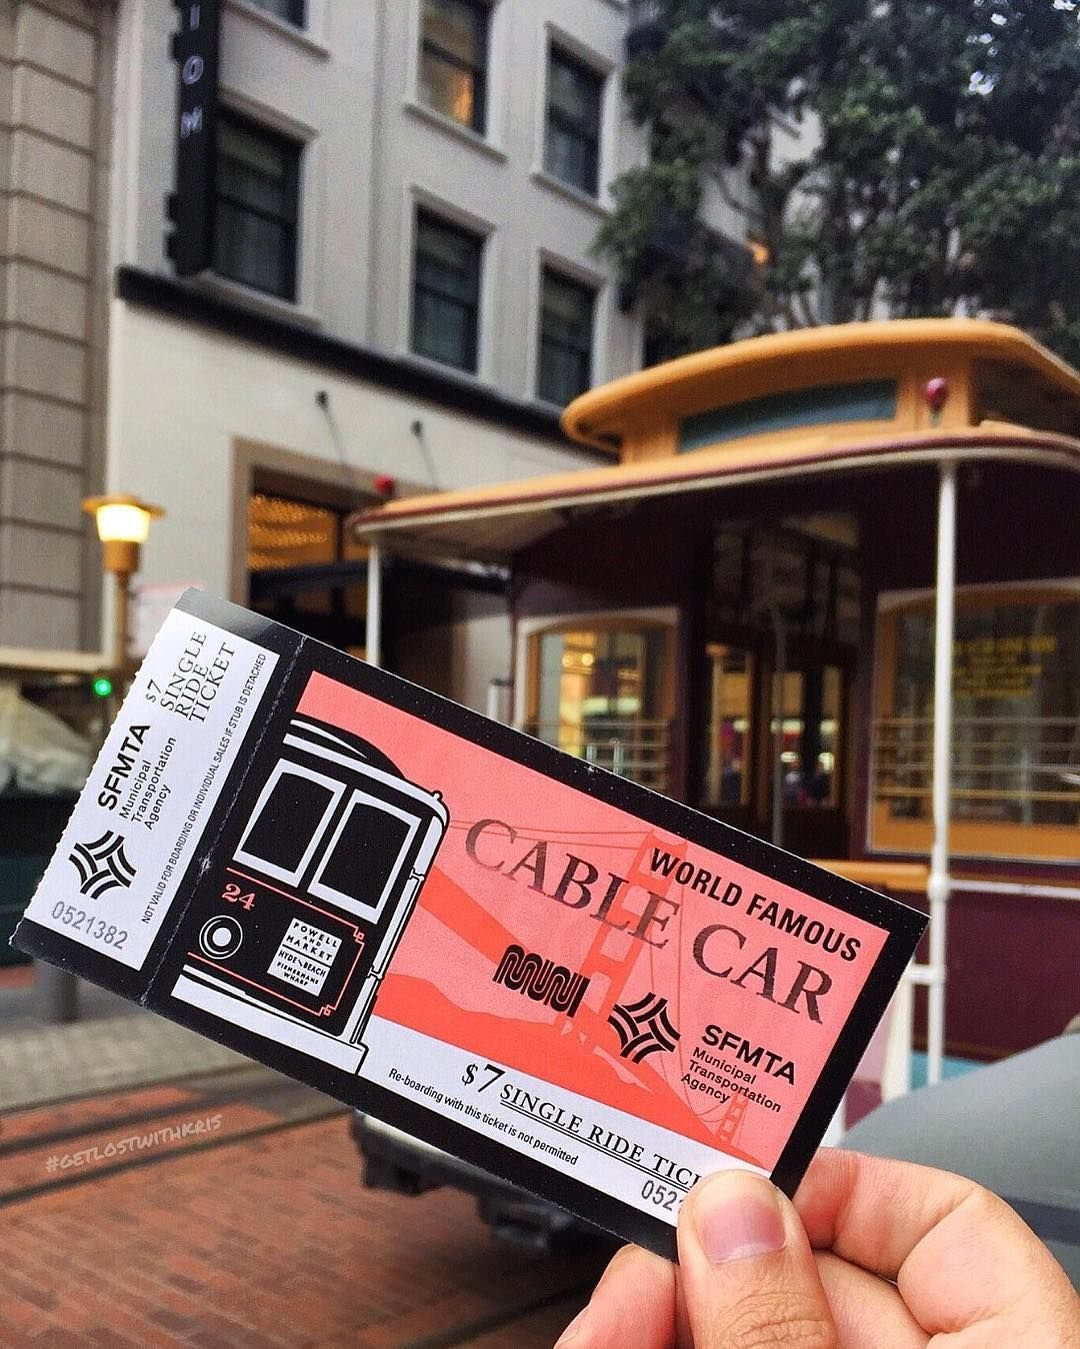 The San Francisco Cable Car is the